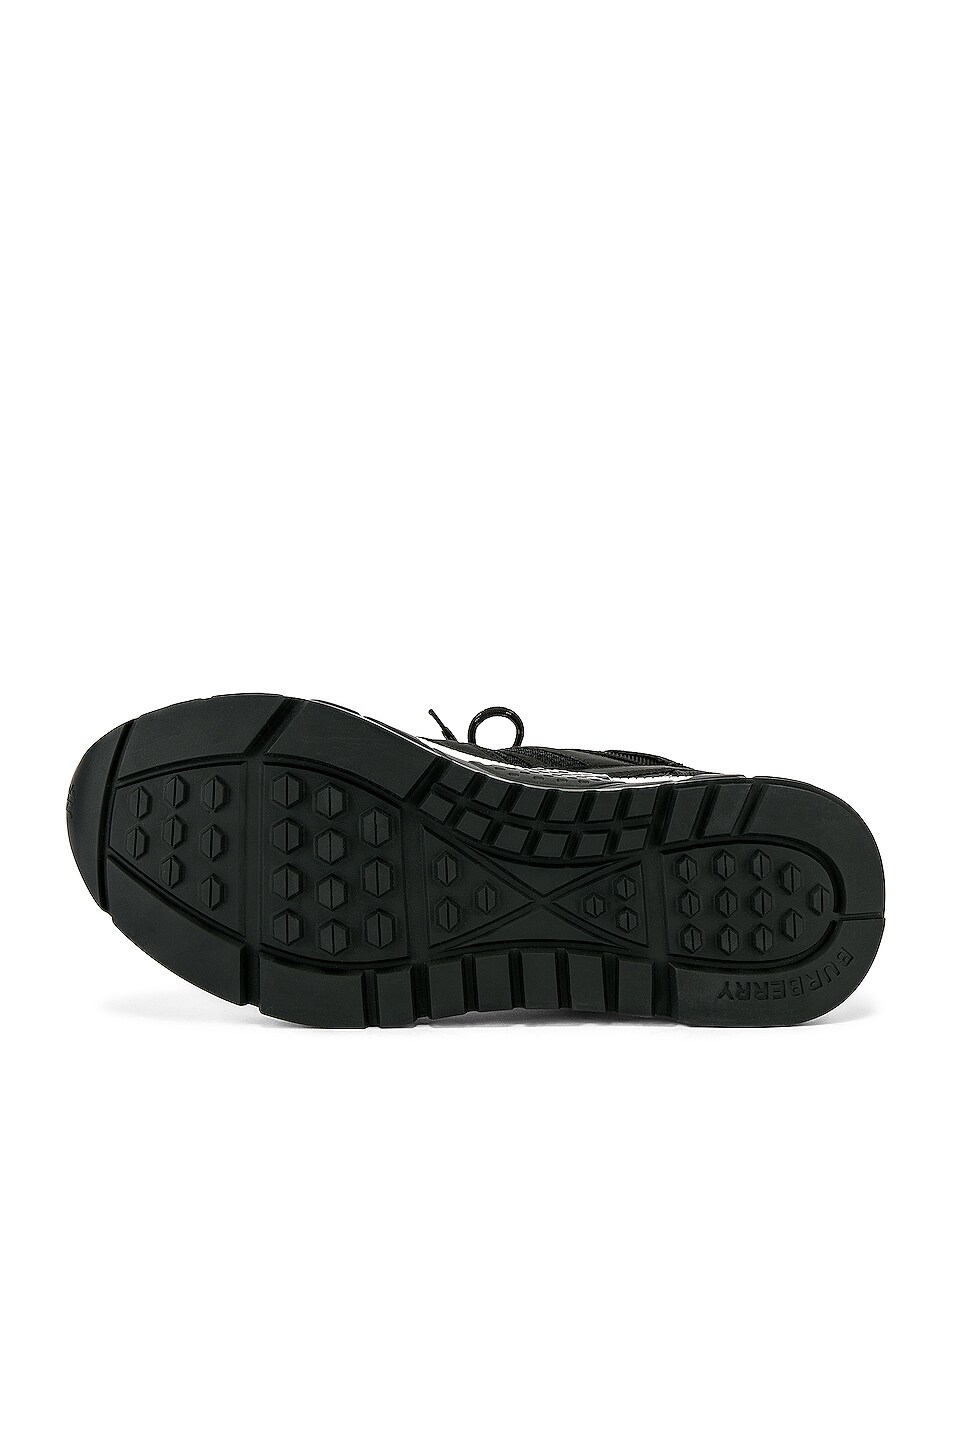 Image 6 of Burberry RS5 Low C Sneaker in Black